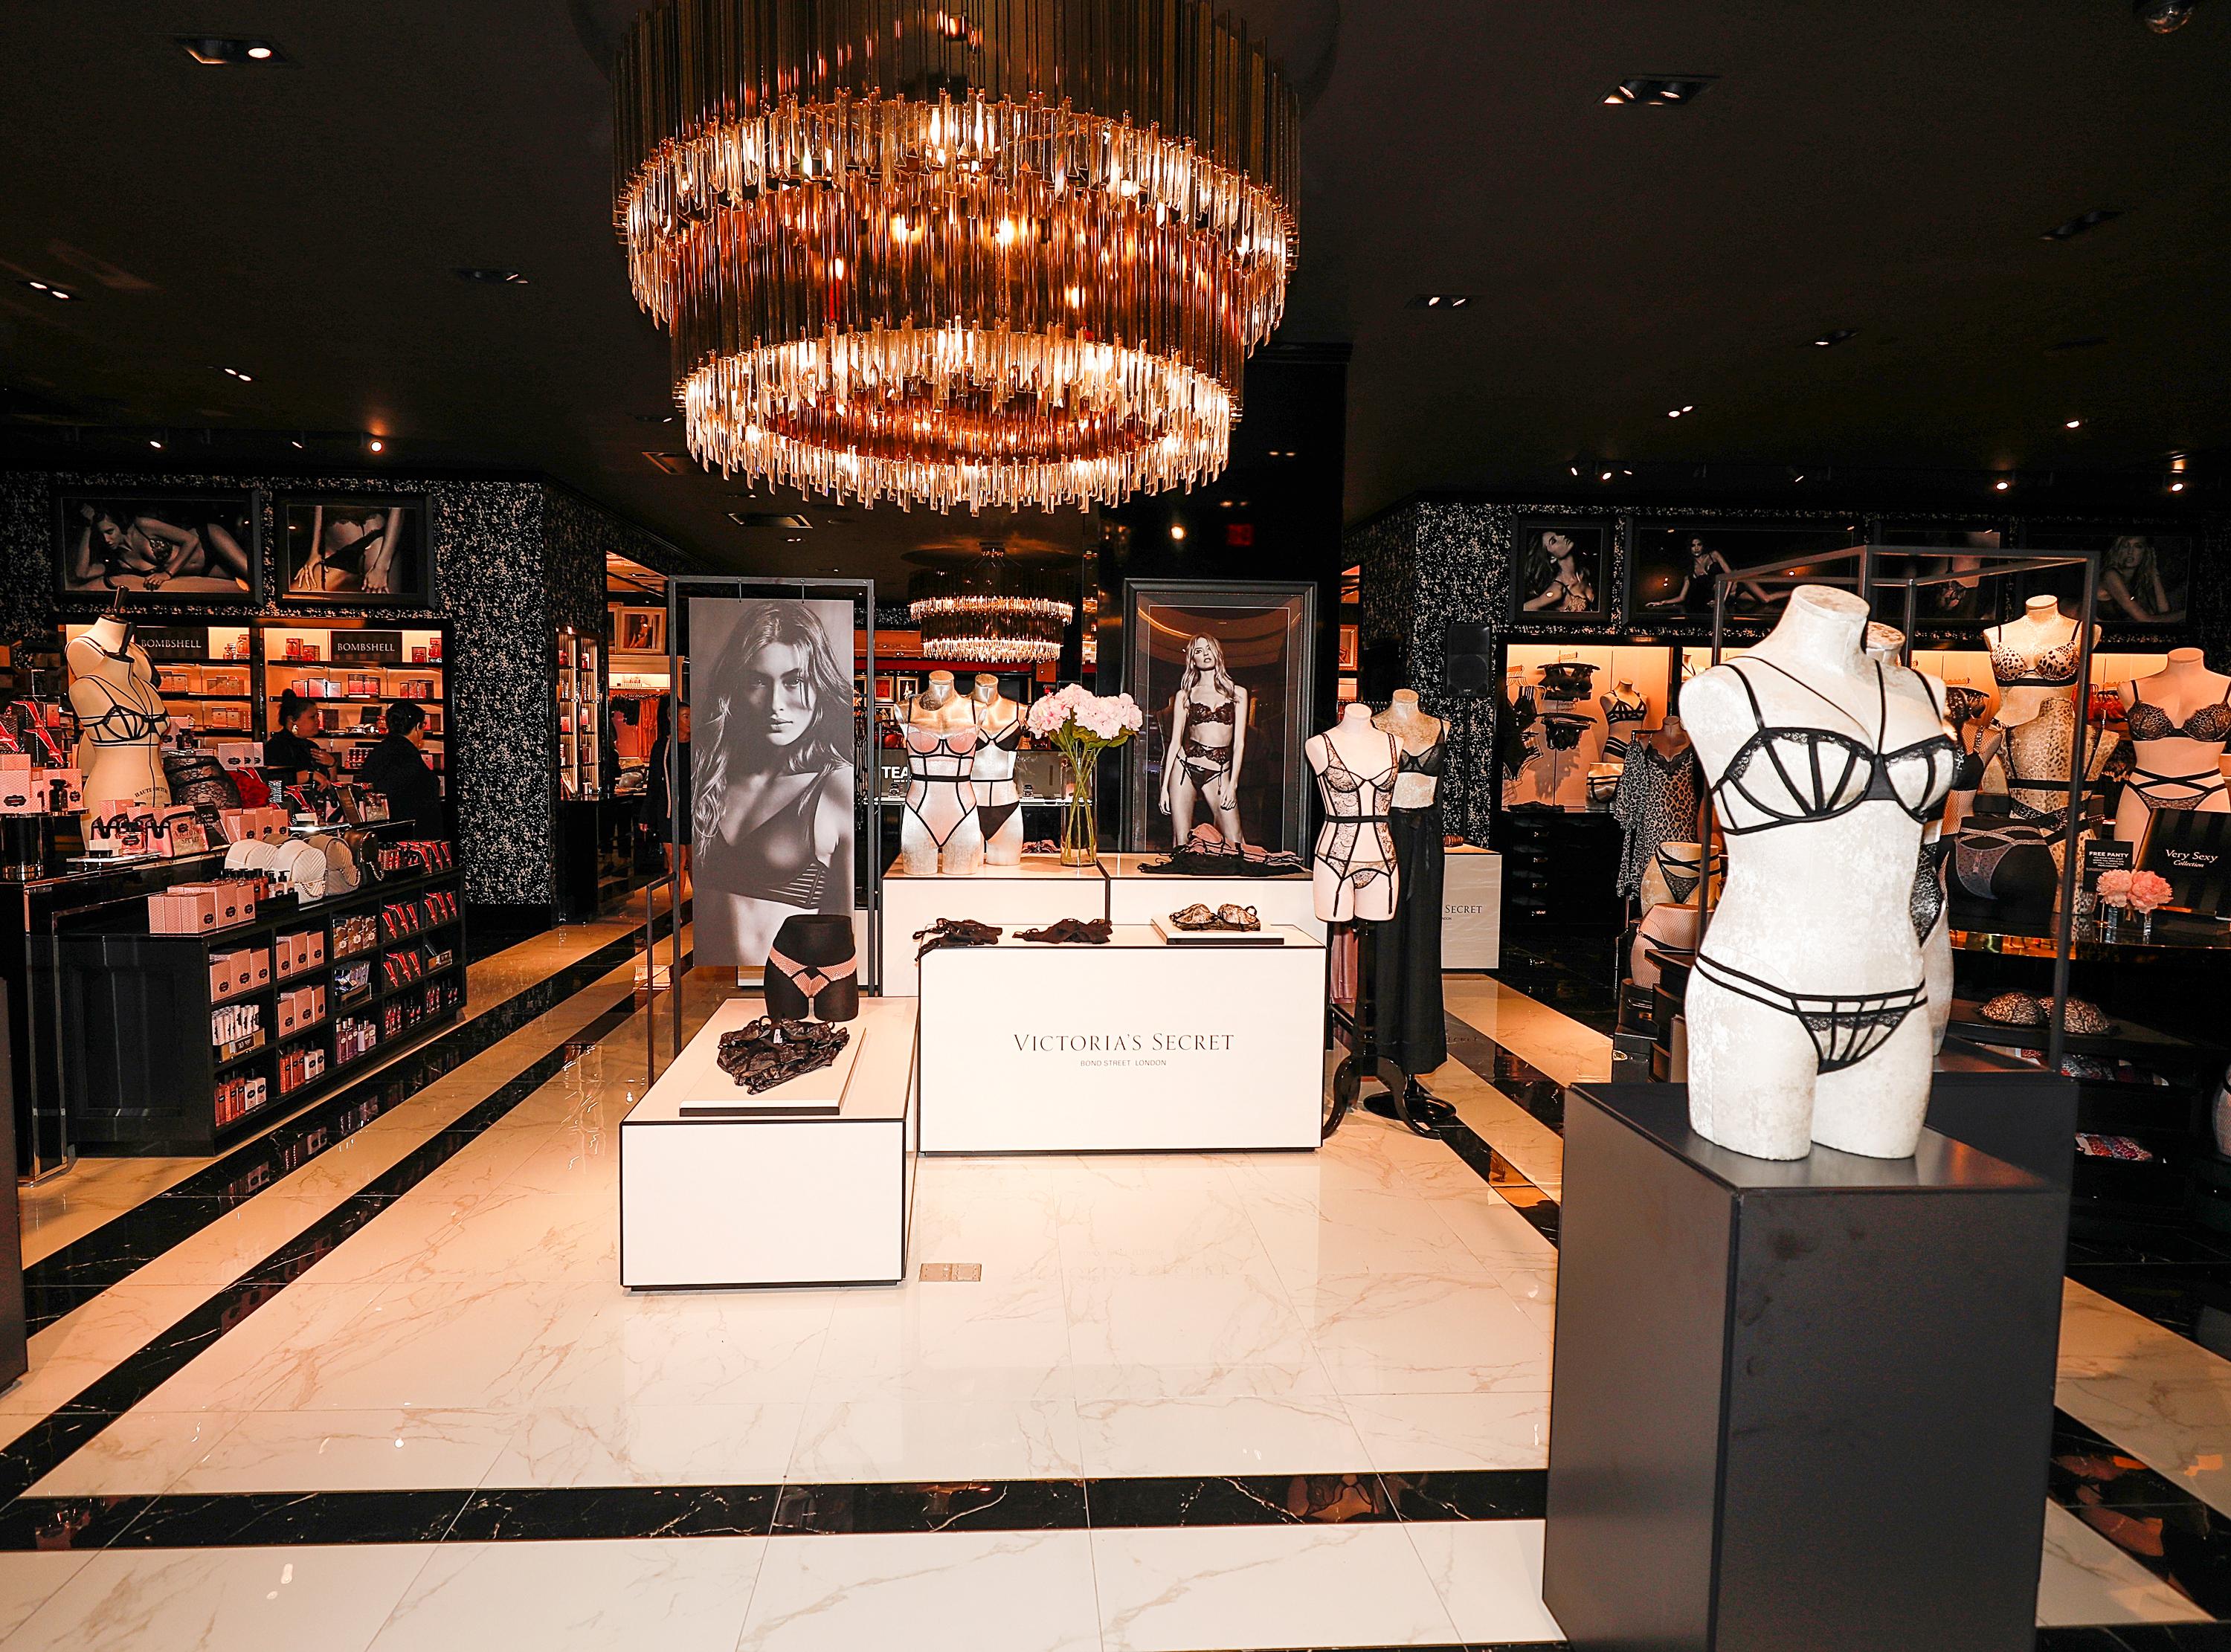 Victoria's Secret is going private. It's only worth $1.1 billion